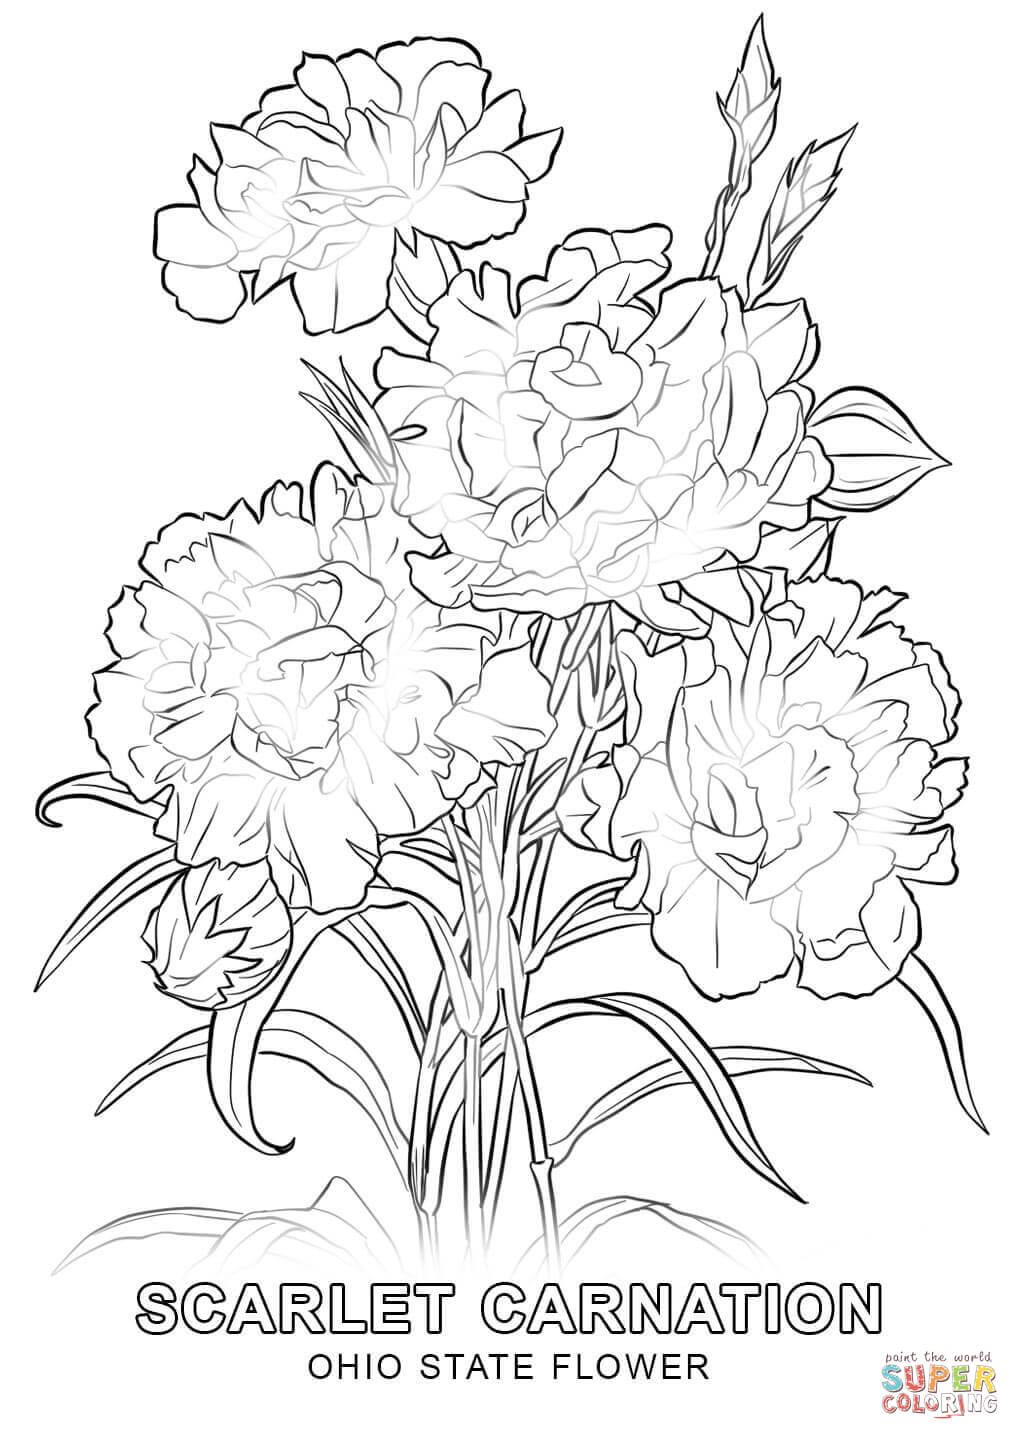 Ohio State Flower Coloring Page Jpg 1020 1440 Flower Coloring